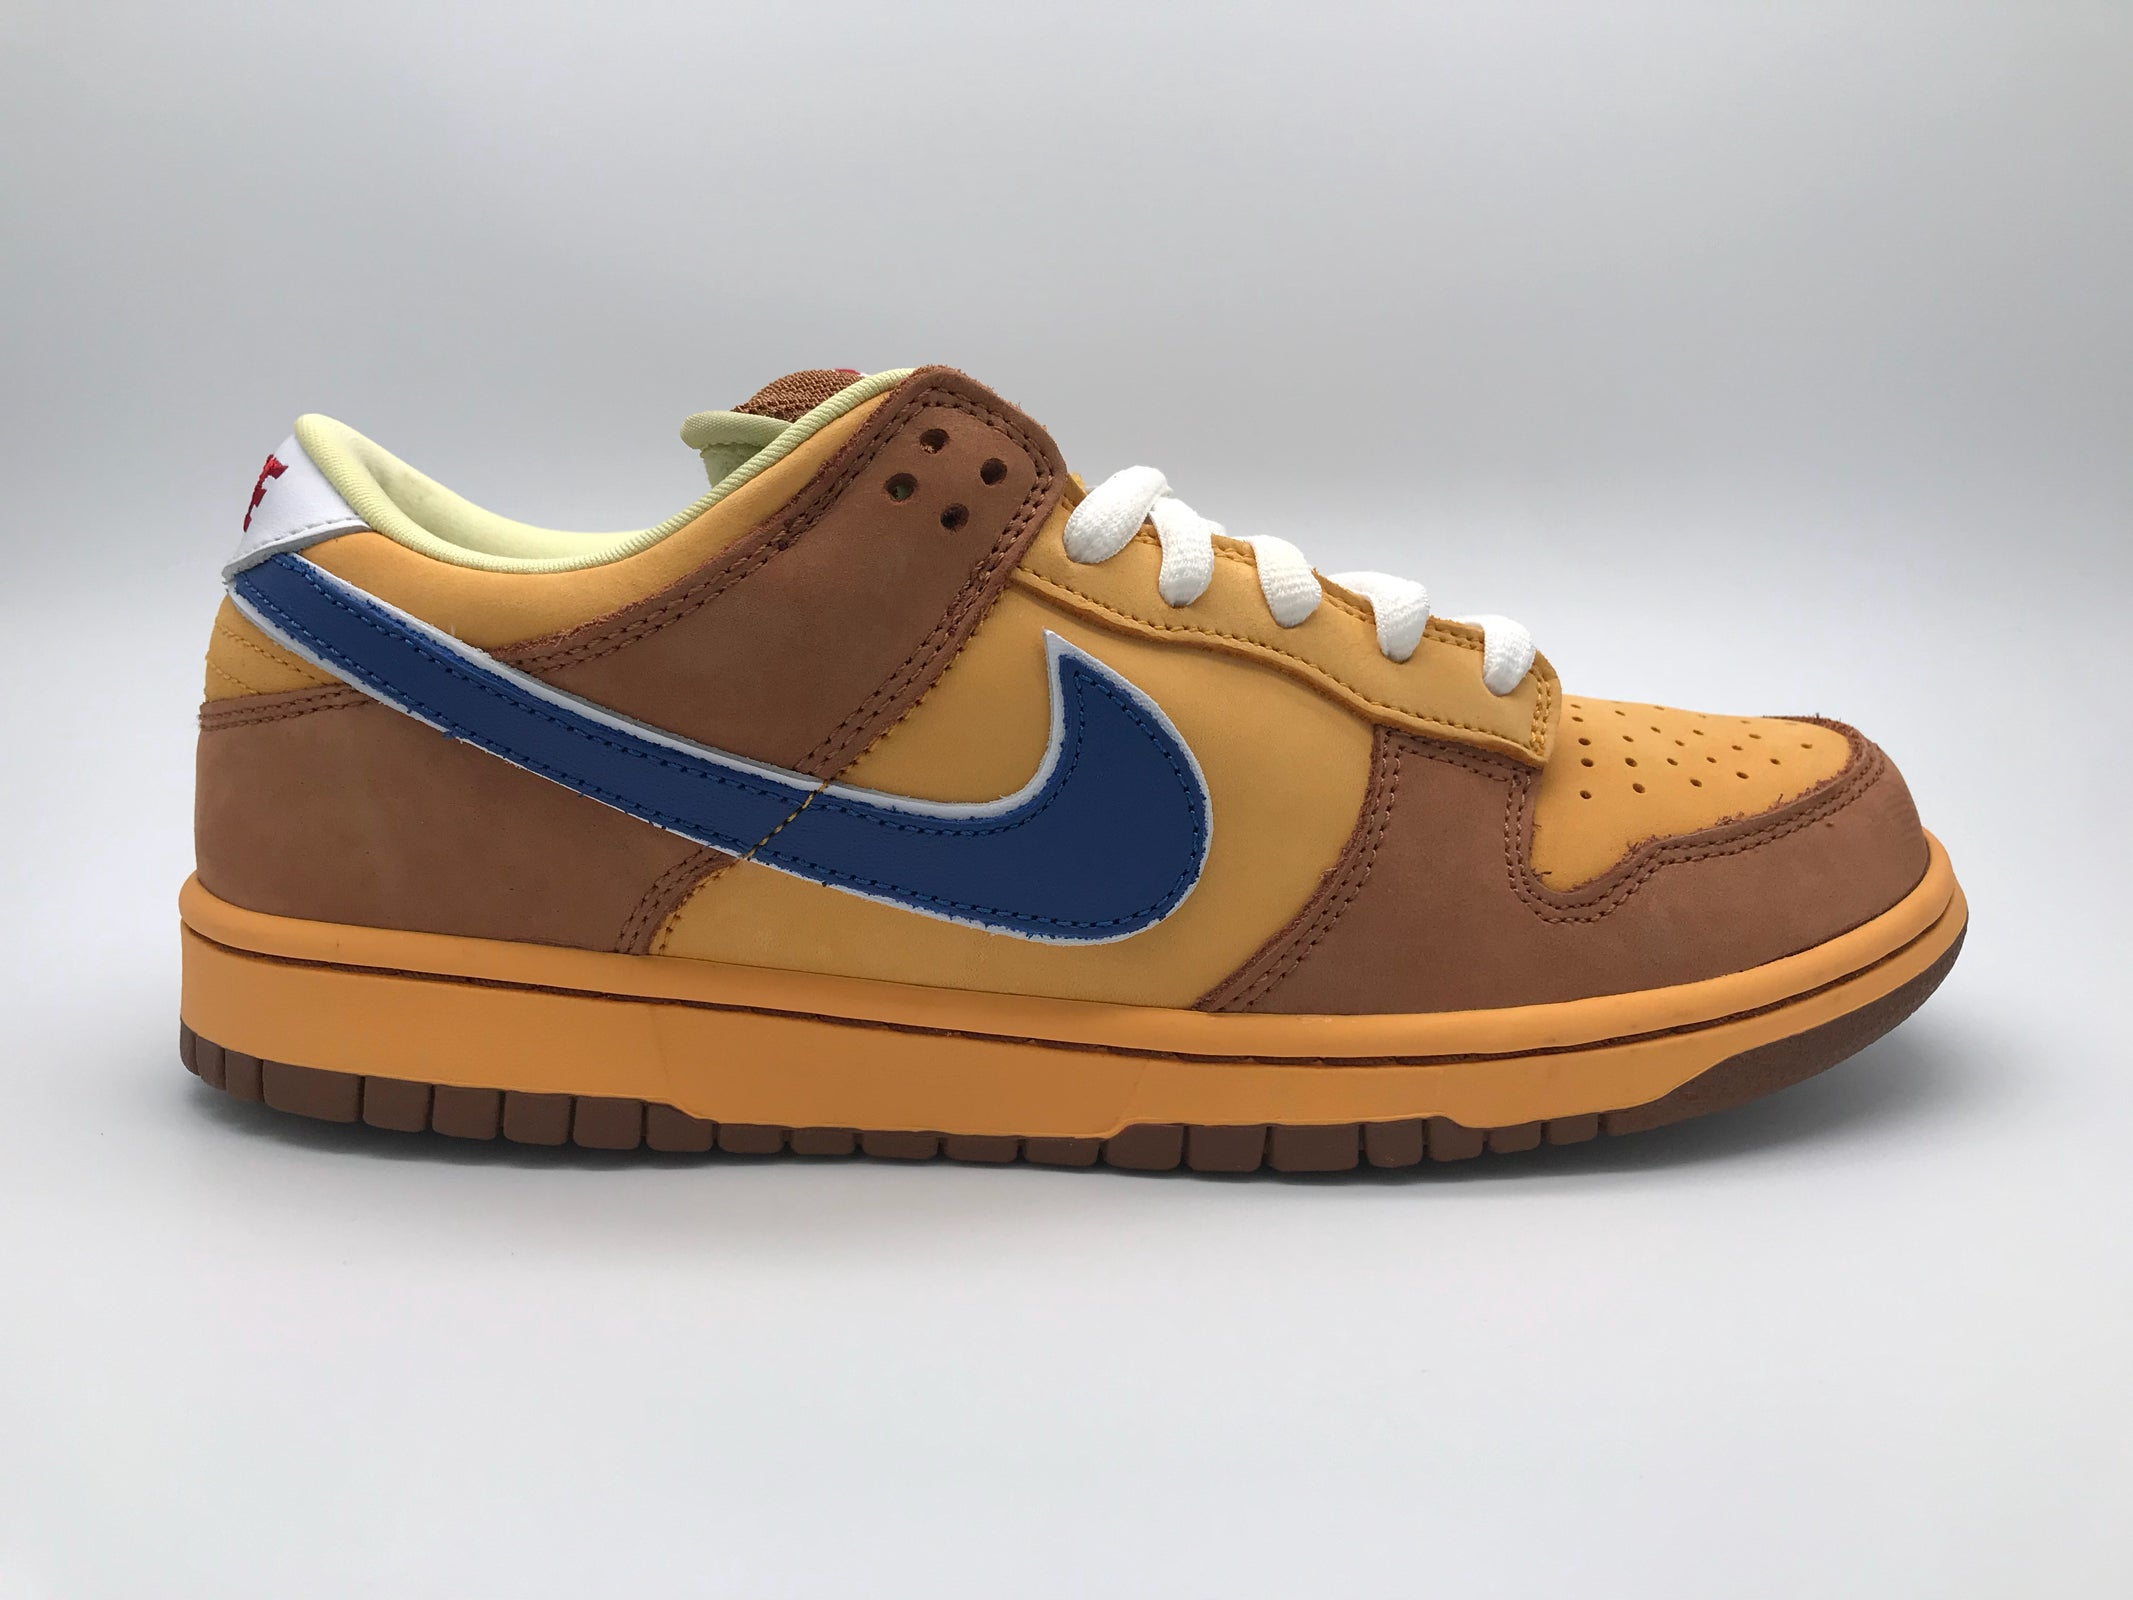 premium selection 19efb a7c38 ... clearance image of nike dunk low premium sb newcastle 9bf01 6fab7